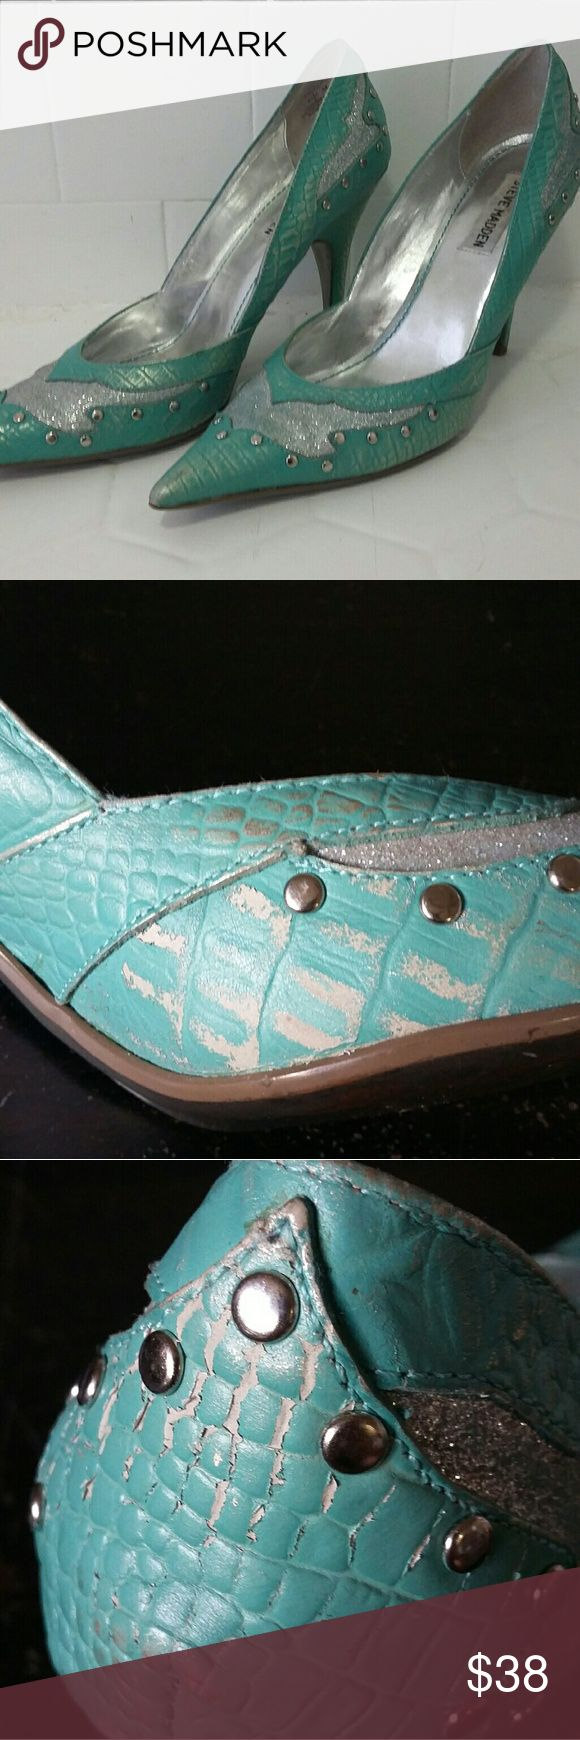 Steve Madden Teal Silver Leather Western Stiletto Steve Madden teal/turquoise/silver Western-style stiletto heels with pointed toe. Faux alligator texture on real leather. Light gold highlights brushed over the blue. Silver glitter on cut-out toe and heel sections, silver studs around cut-outs. Some glitter flaking on one shoe, and some leather scuffing (see photos). Both are somewhat minor and don't detract from the shoes while being worn (the white scuffs blend in with the gold…